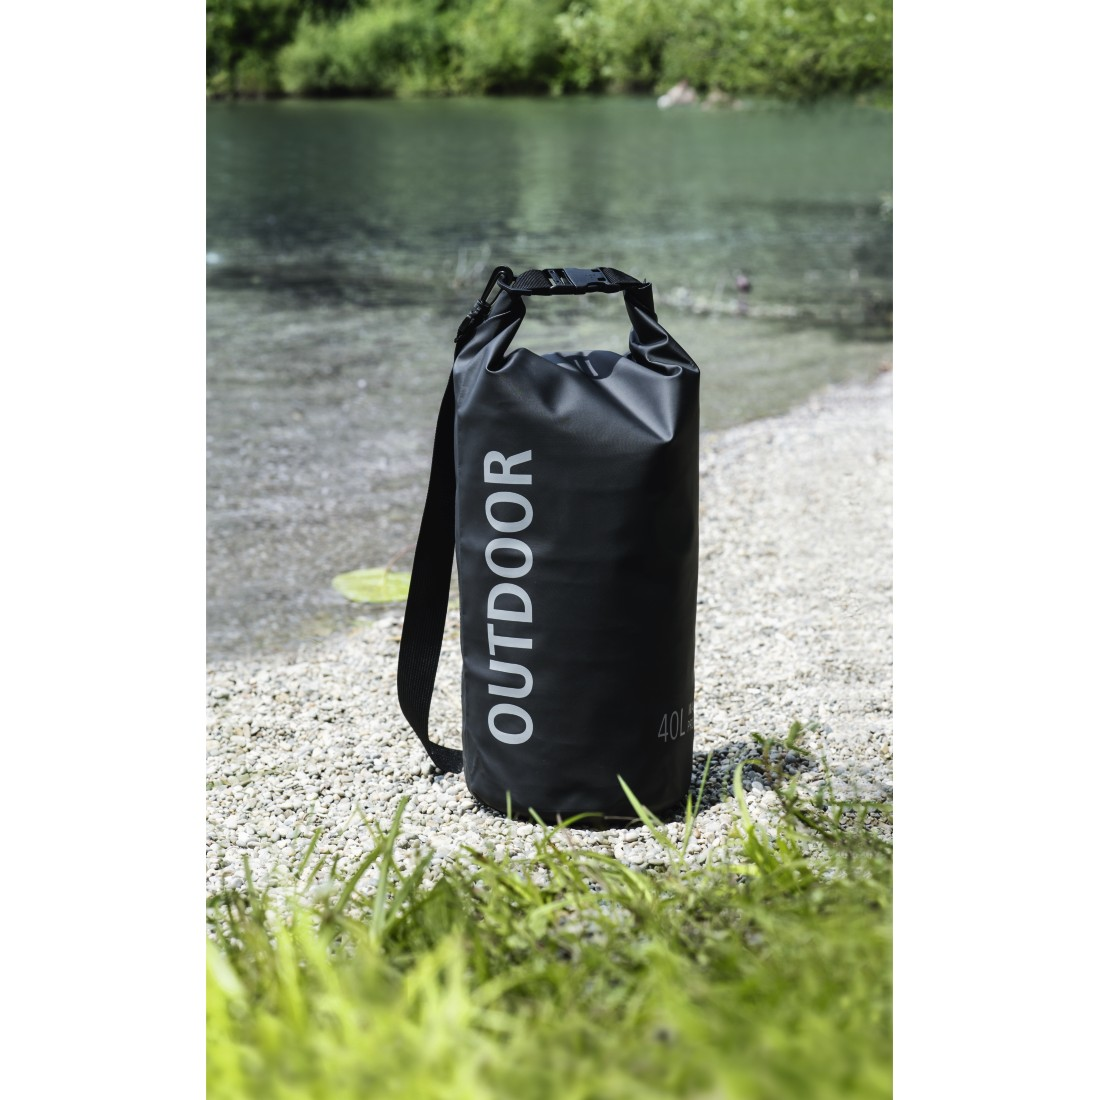 awx High-Res Appliance - Hama, Outdoor Bag, 40 l, black